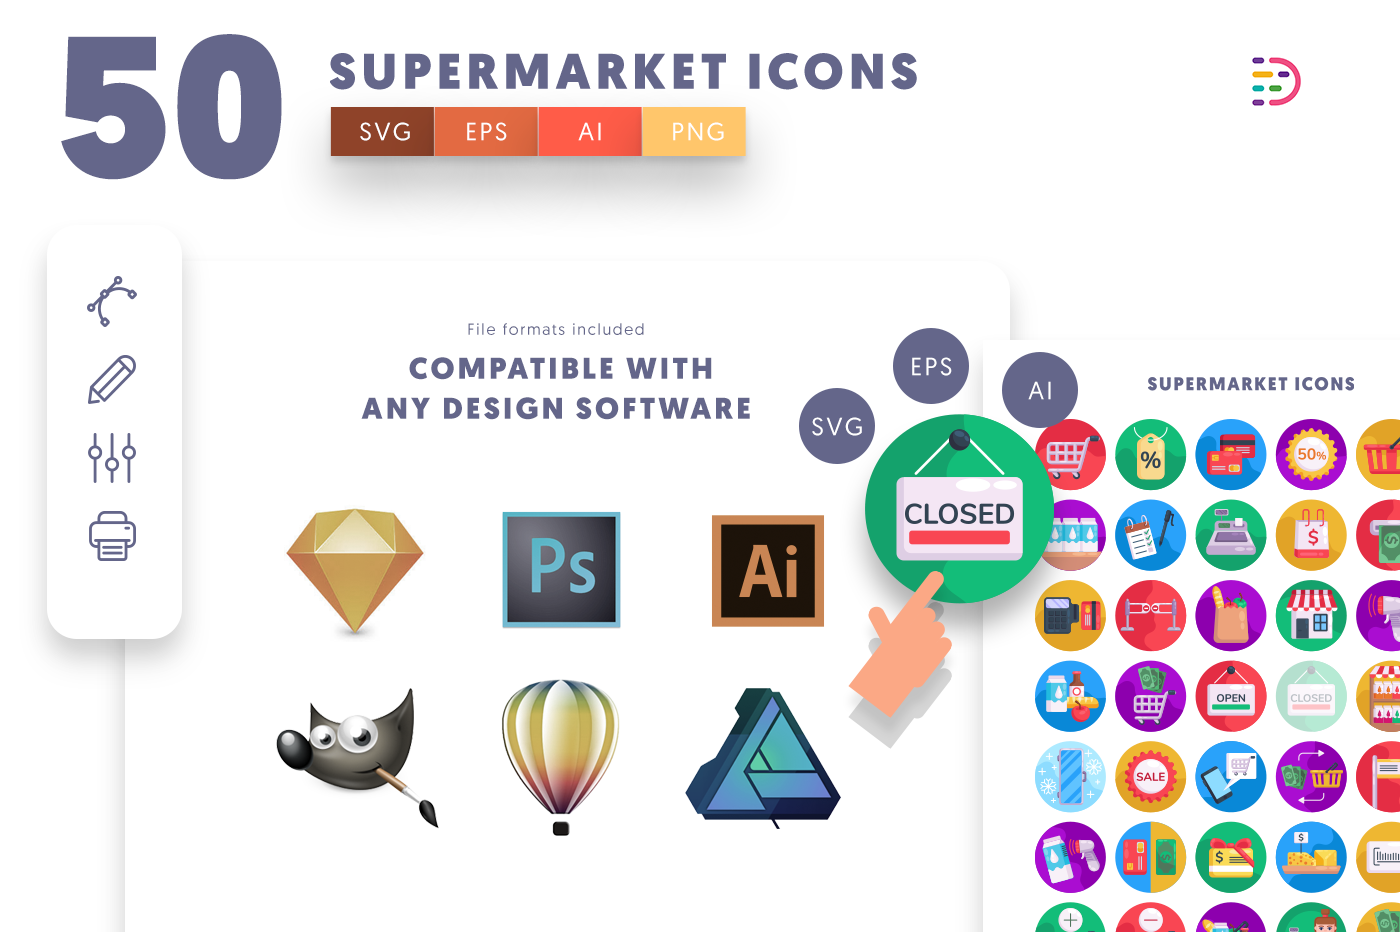 full vector 50 Supermarket Icons EPS, SVG, PNG